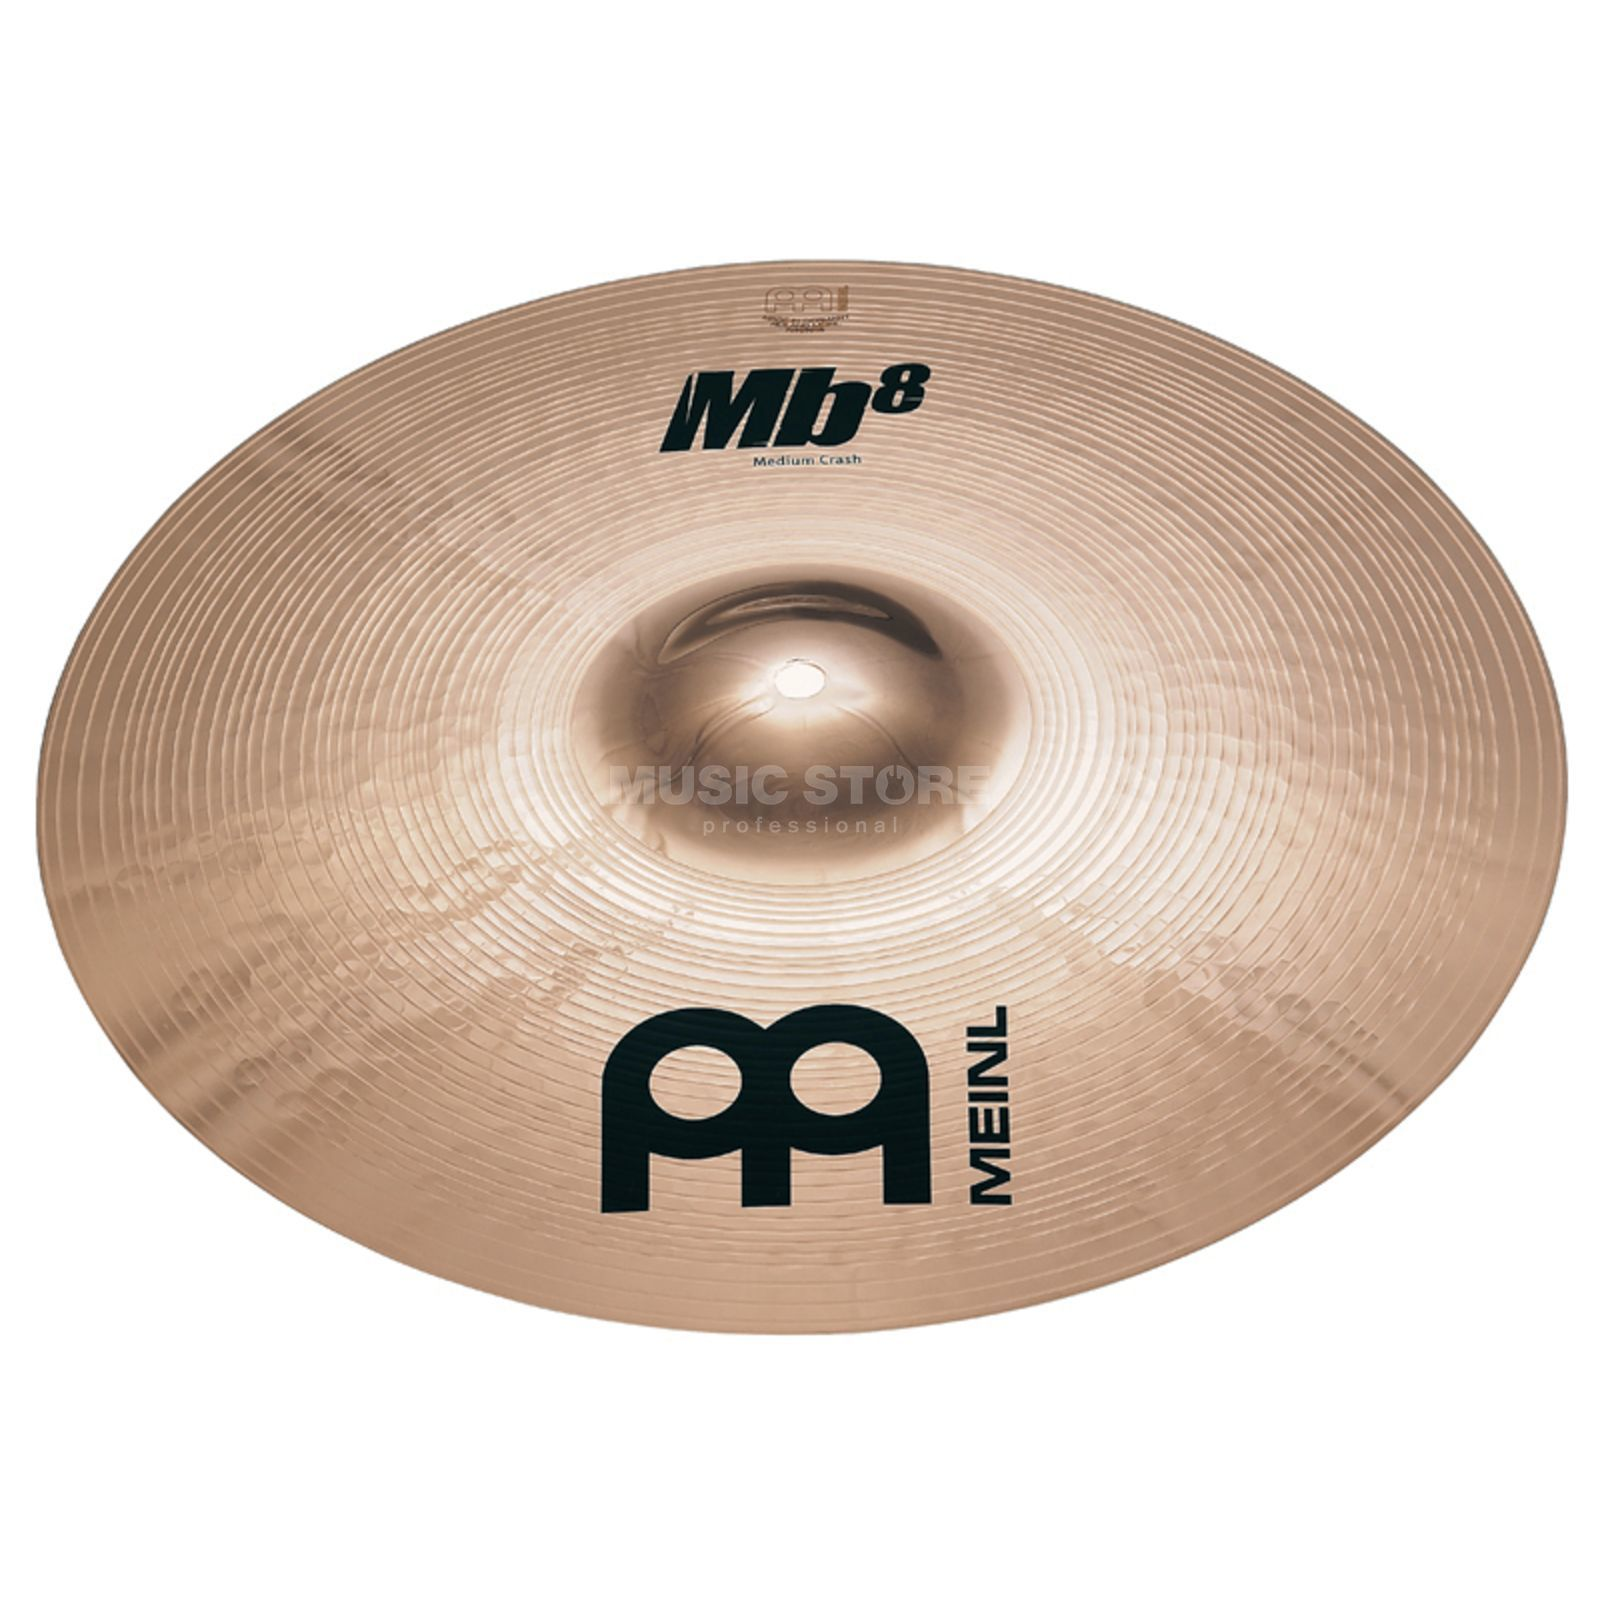 "Meinl MB8 Medium Crash 20"", MB8-20MC-B, Brilliant Finish Produktbild"